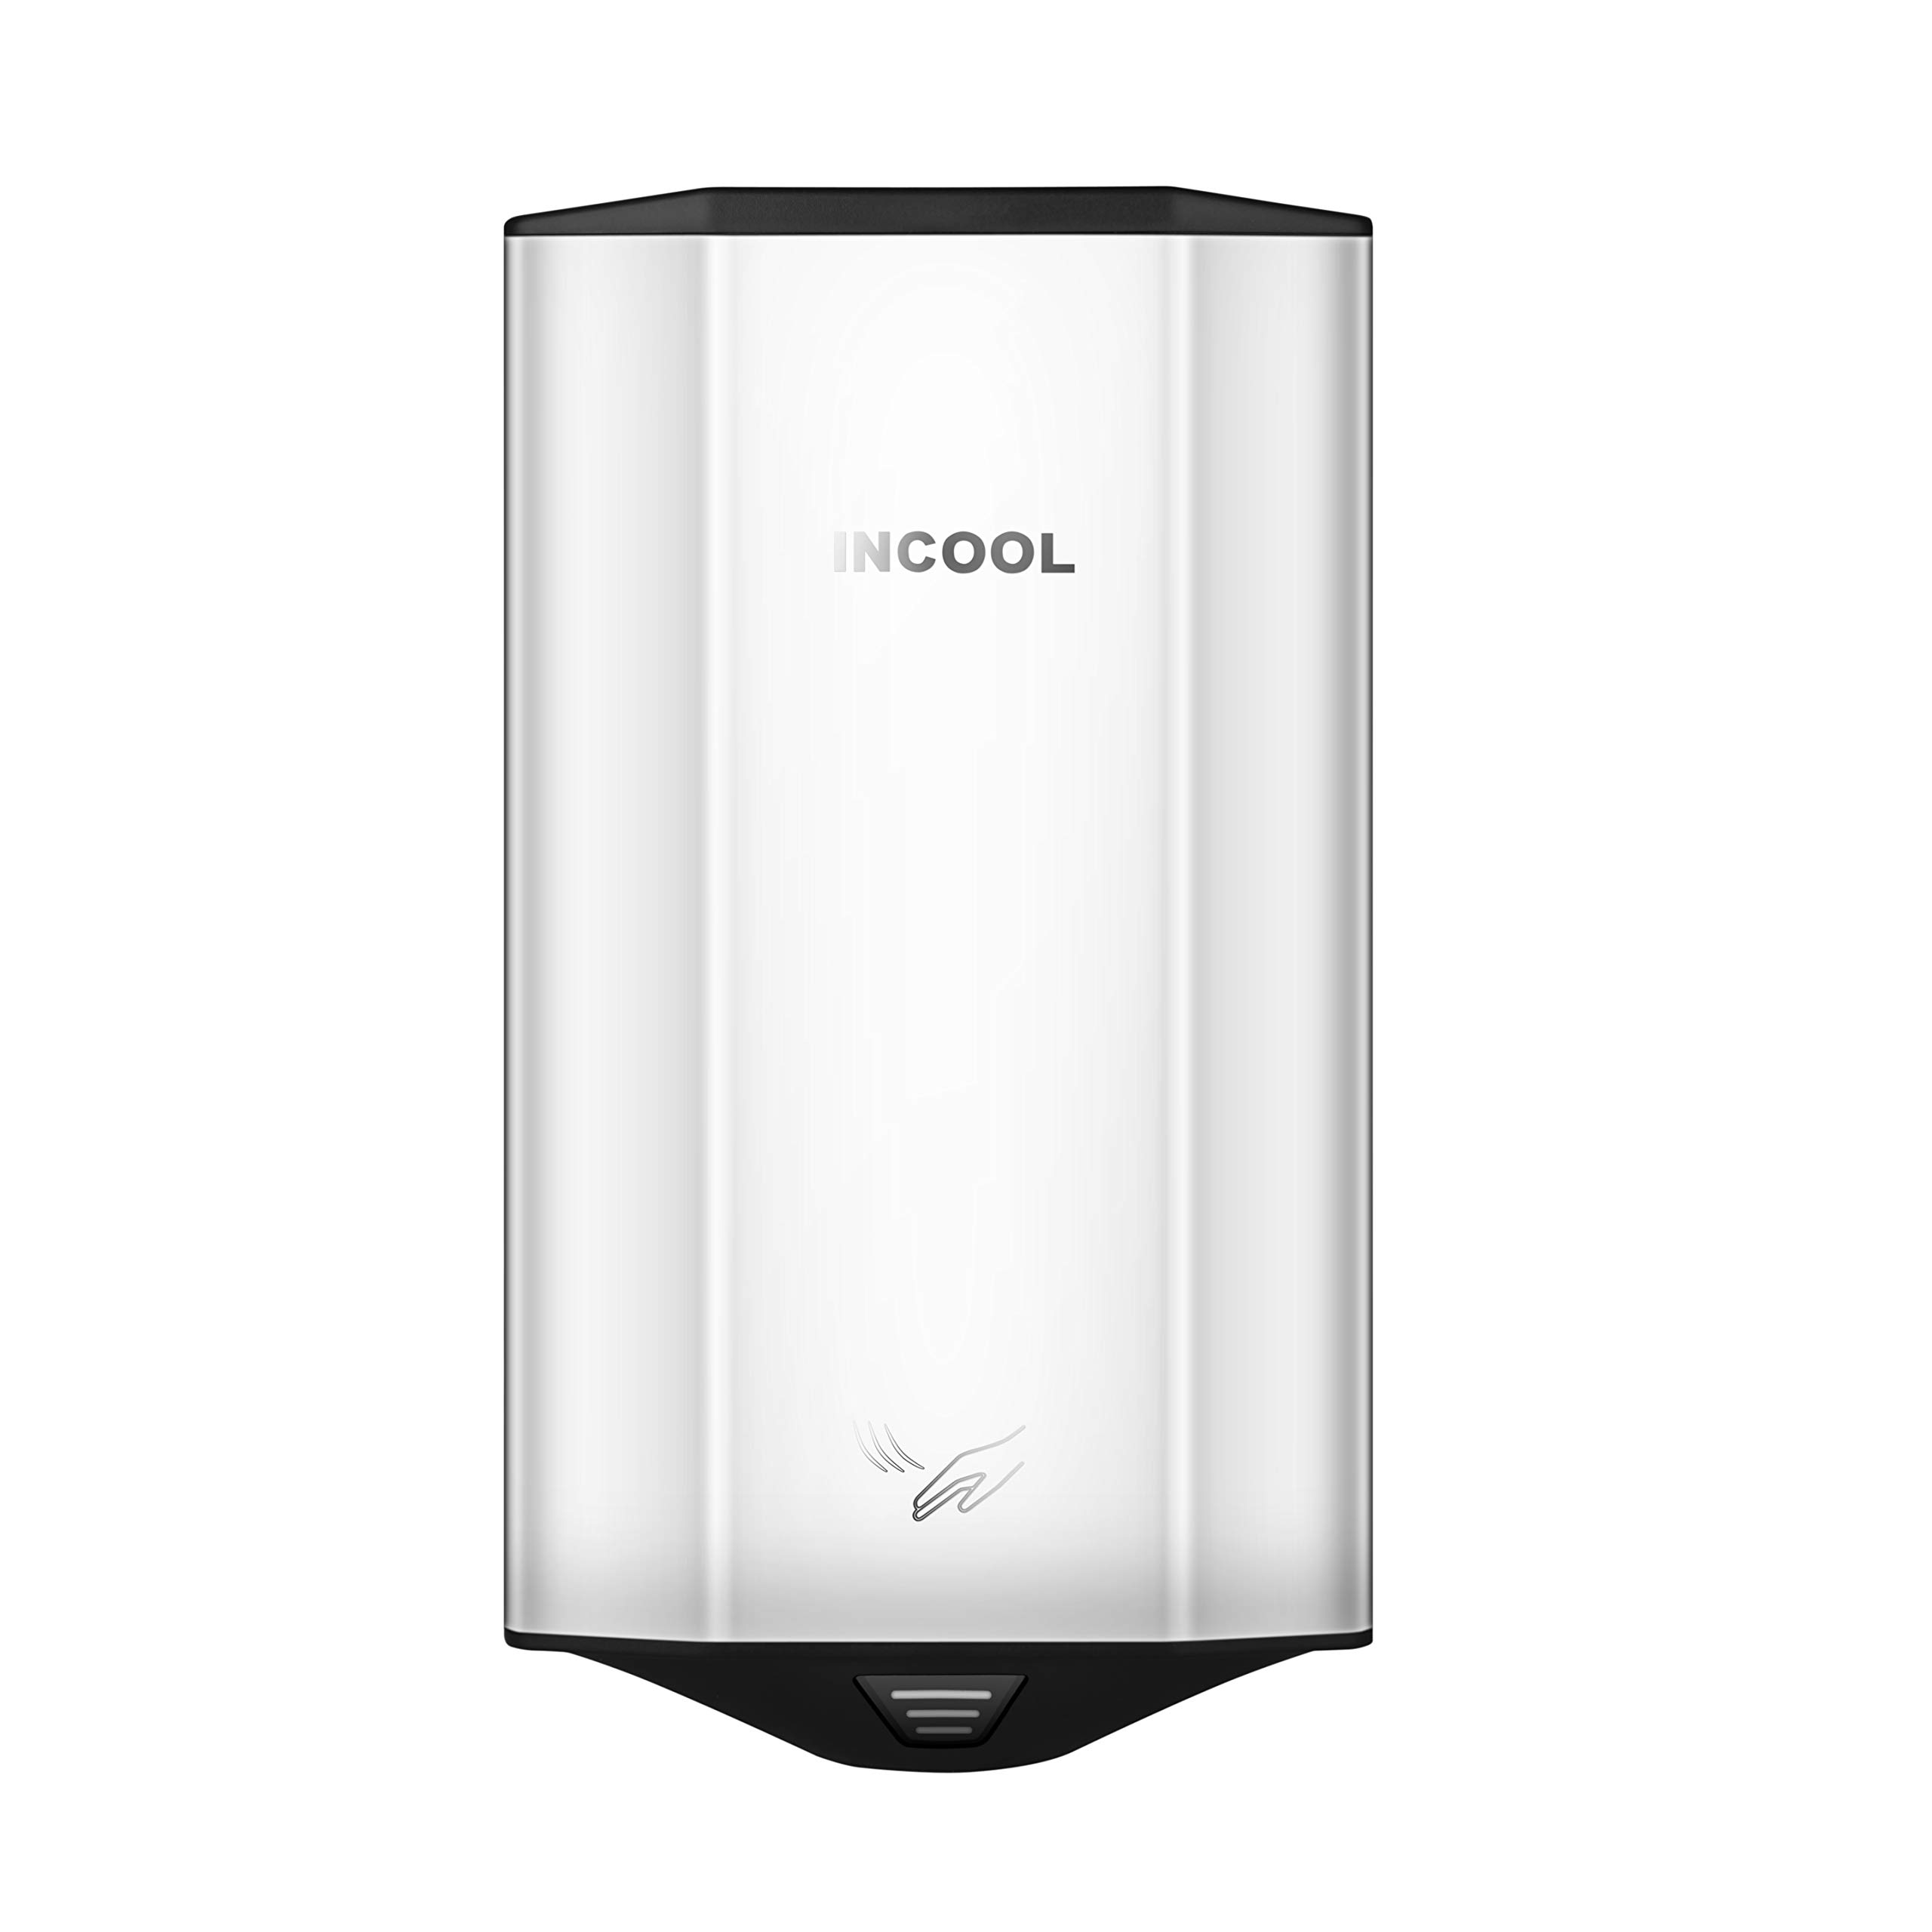 INCOOL 607P Automatic HighSpeed Commercial Hand Dryer (Polished)